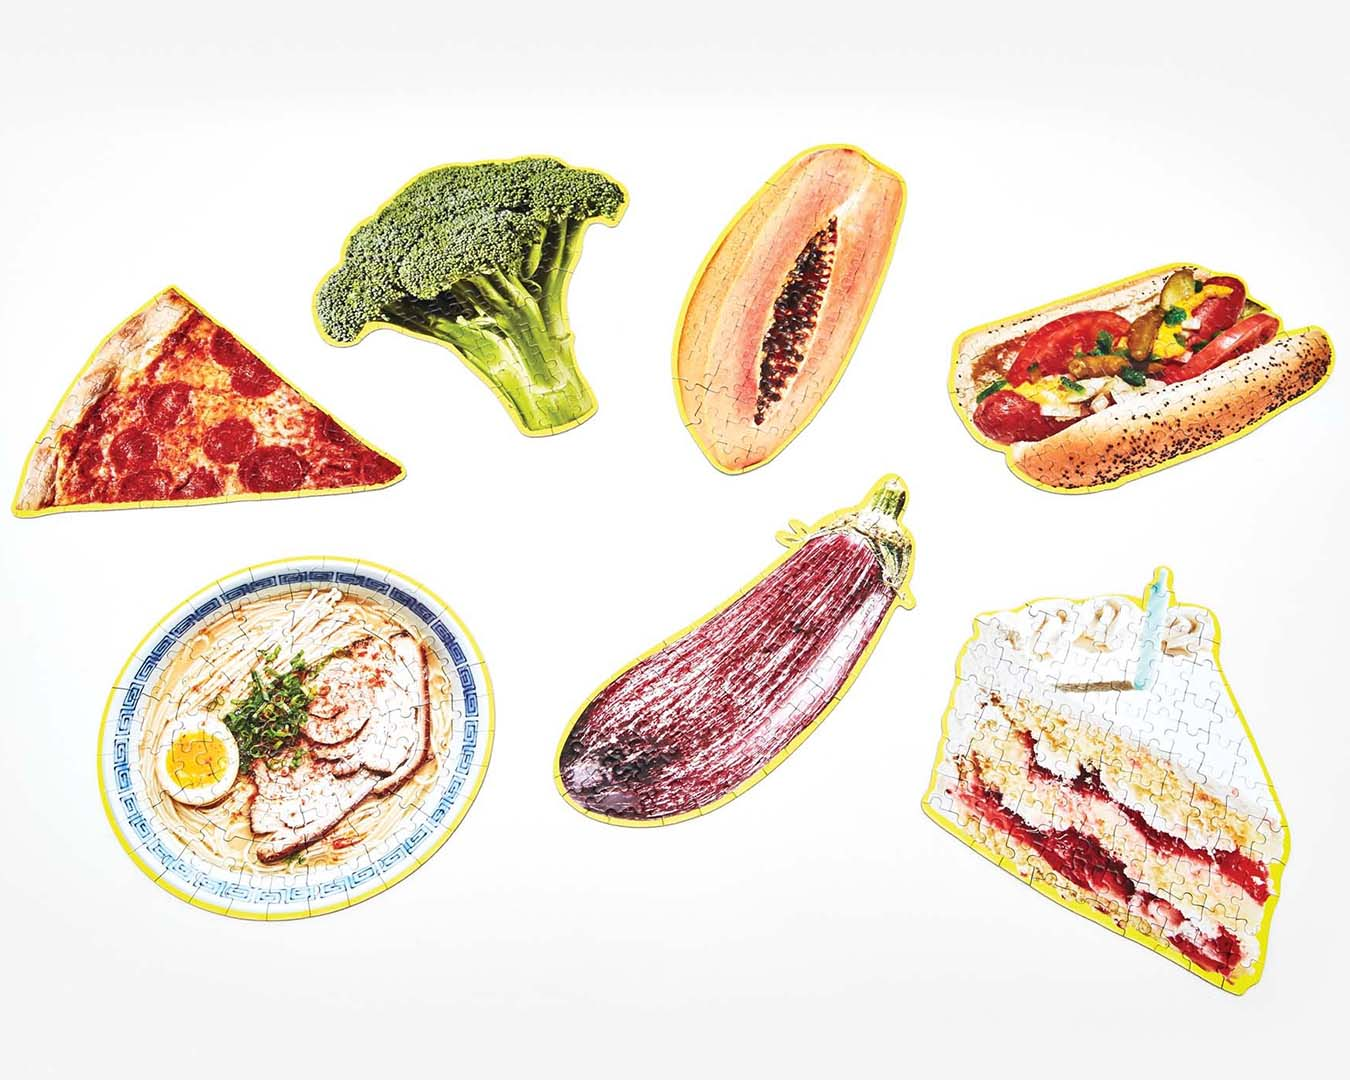 A selection of mini puzzles depicting a slice of pizza, hotdog, cake, ramen, melon, eggplant and broccoli.